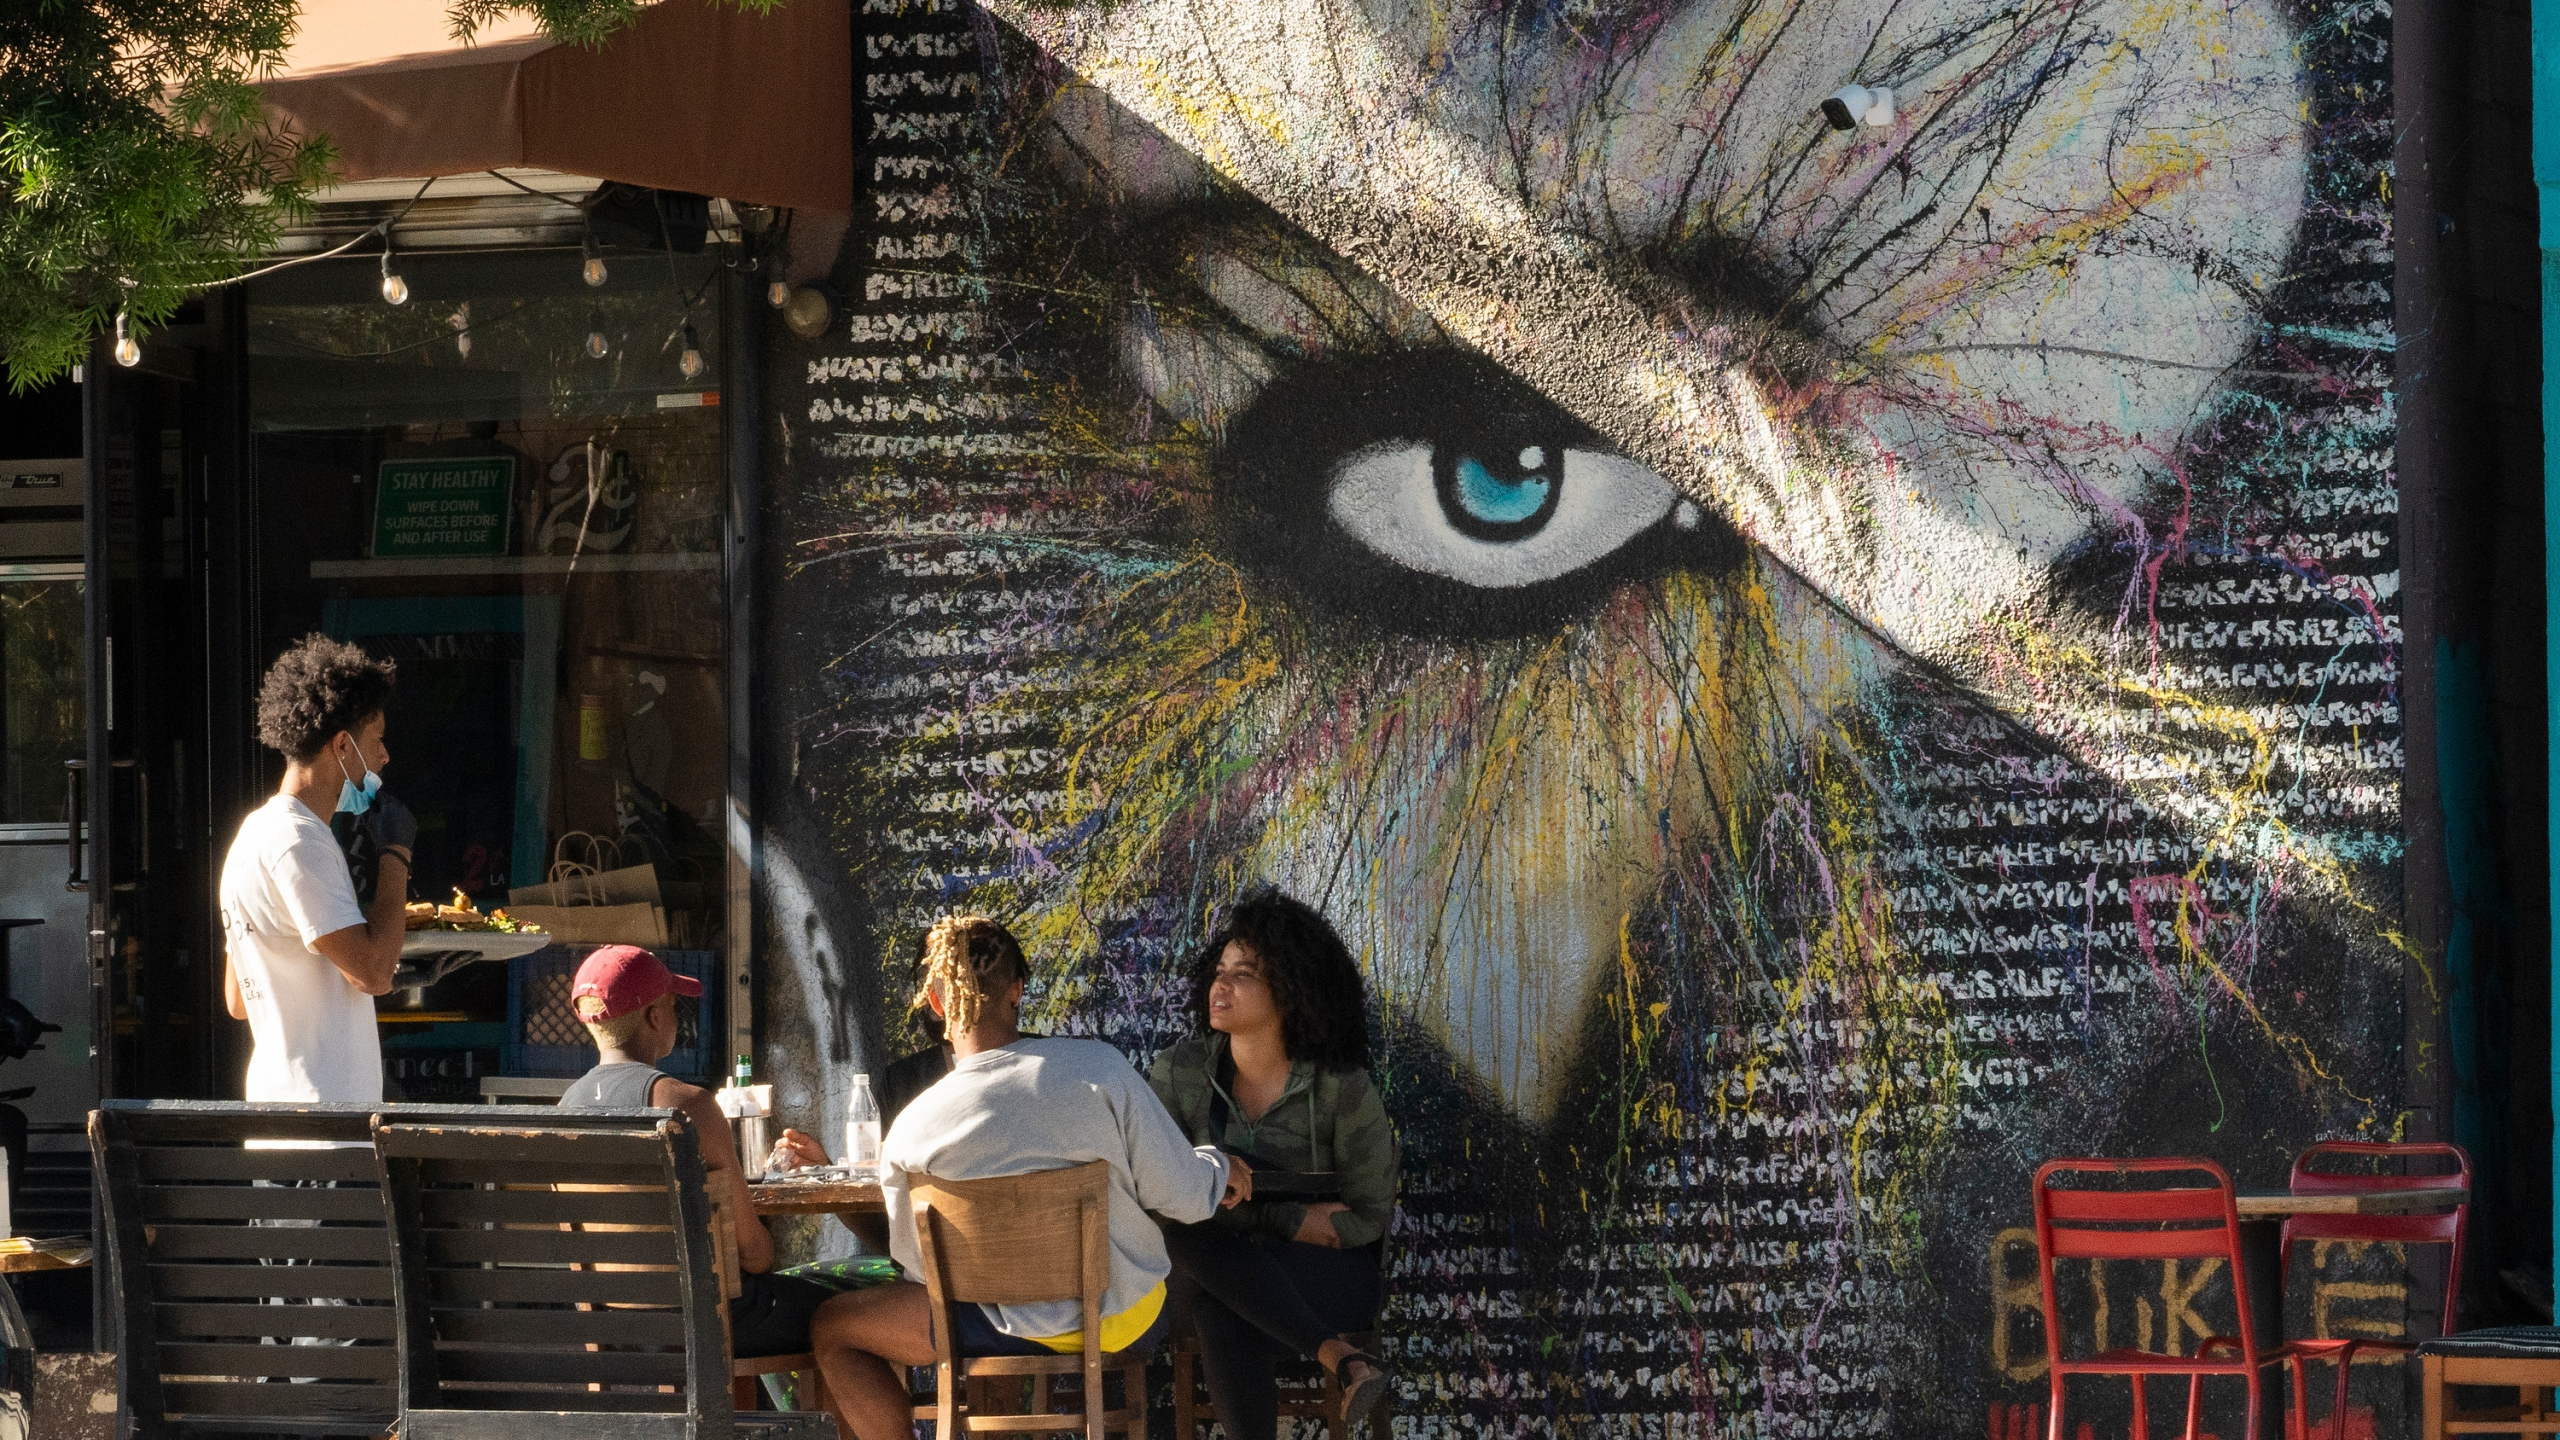 In this June 5, 2021, file photo, people eat outdoors outdoors at a soul food restaurant in Los Angeles. (AP Photo/Damian Dovarganes, File)